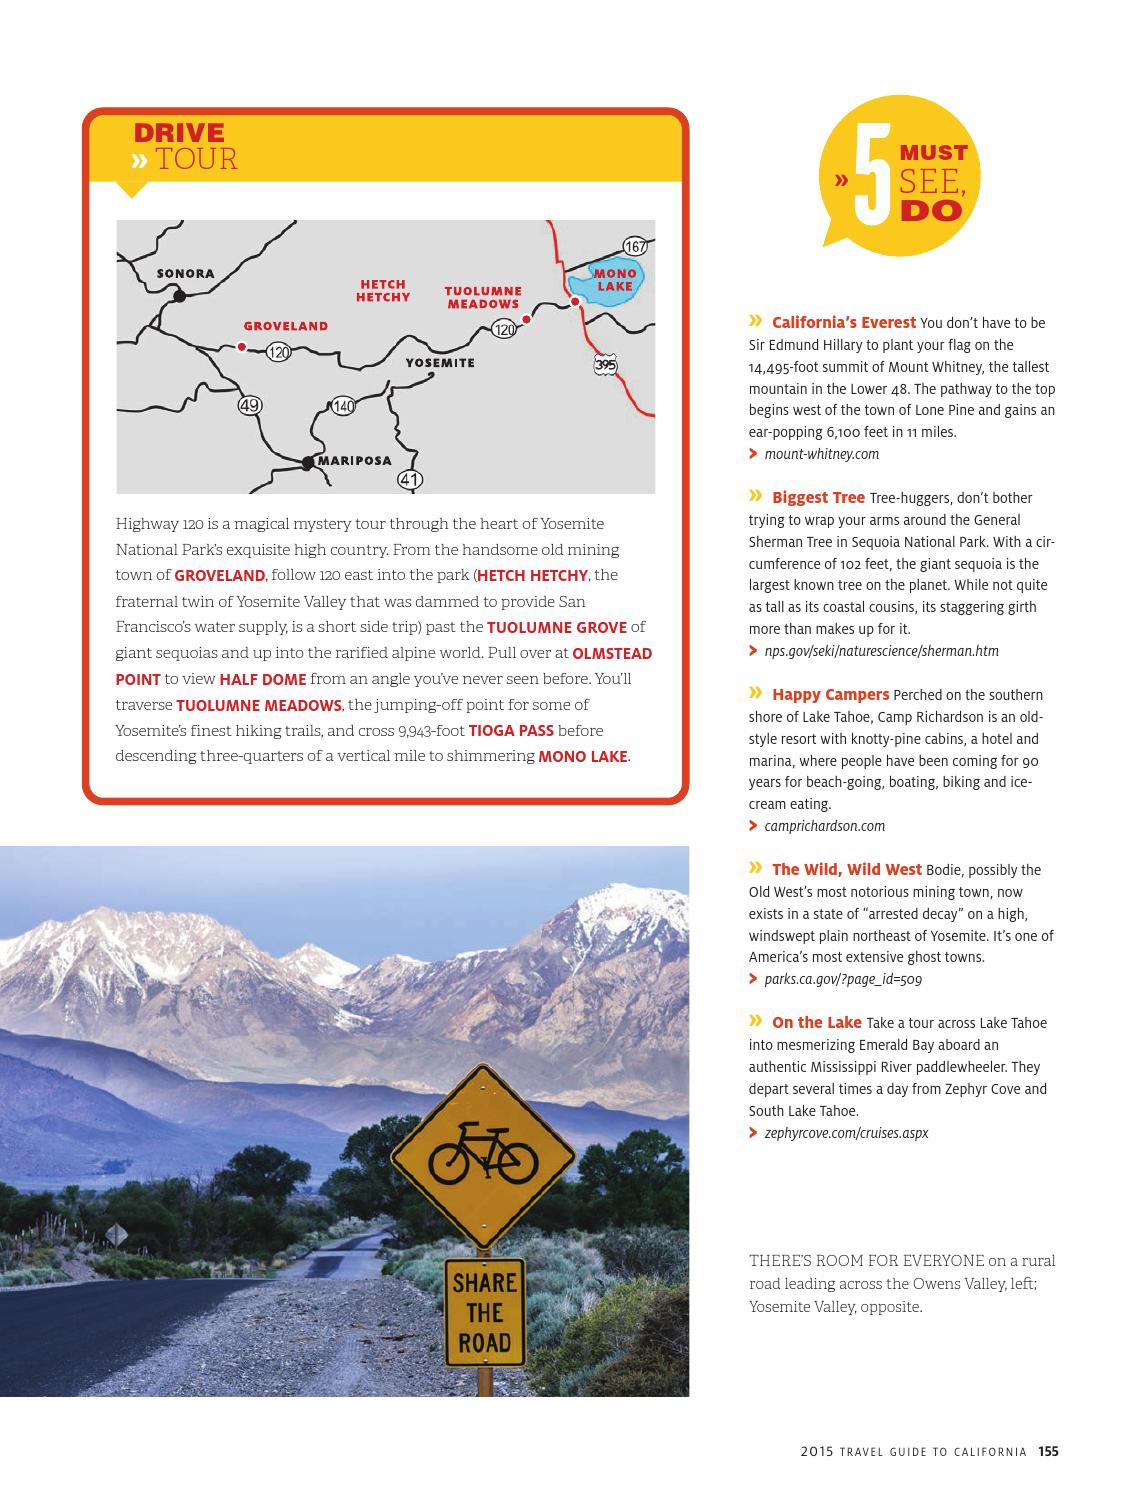 2015 travel guide to california by markintoshdesign issuu  ?page_id=509 #11